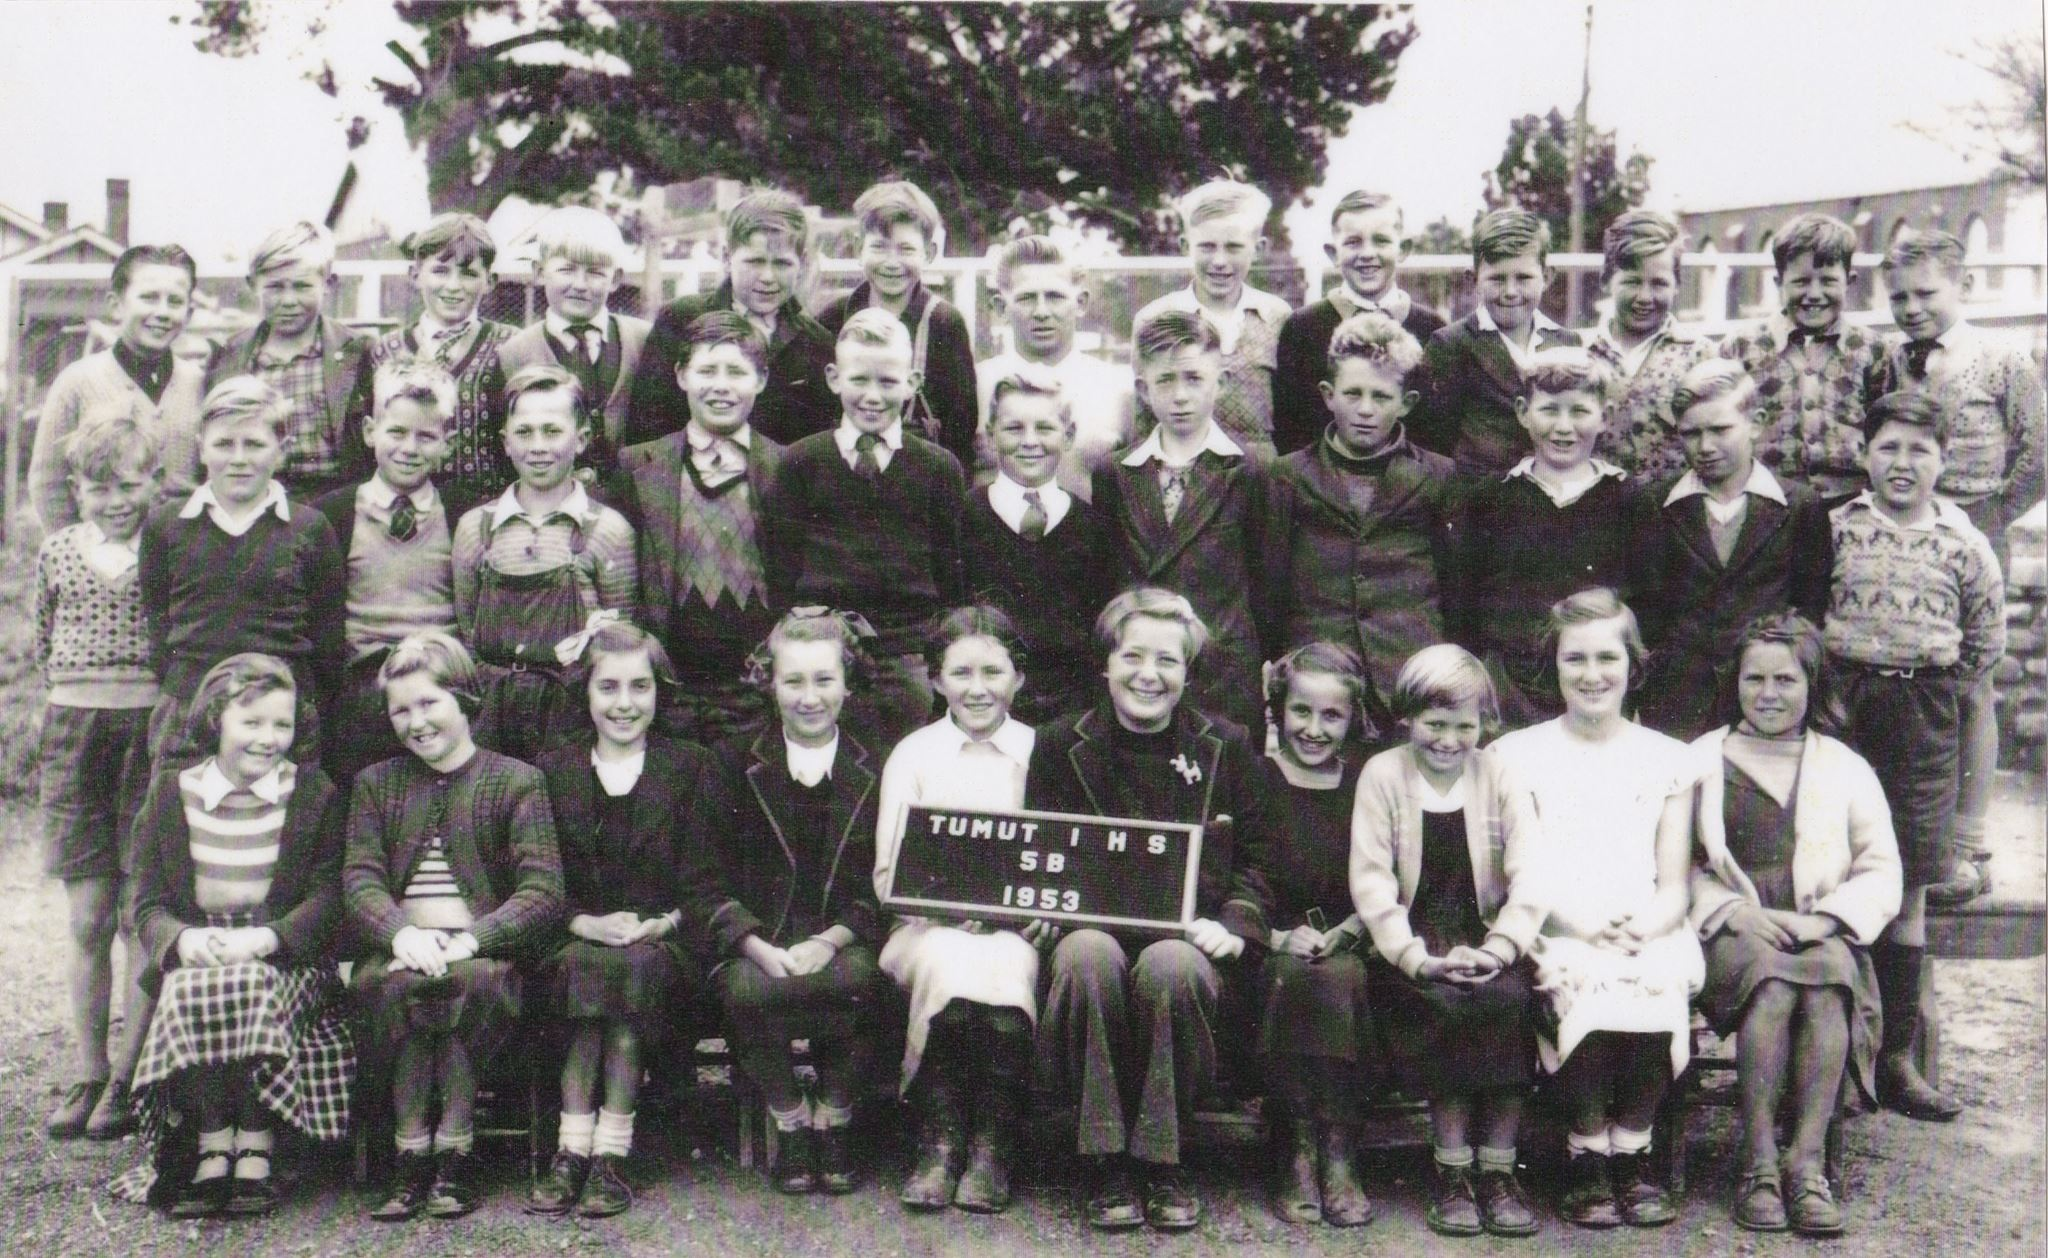 chrisnicholes-tumut-intermediate-high-school-1953